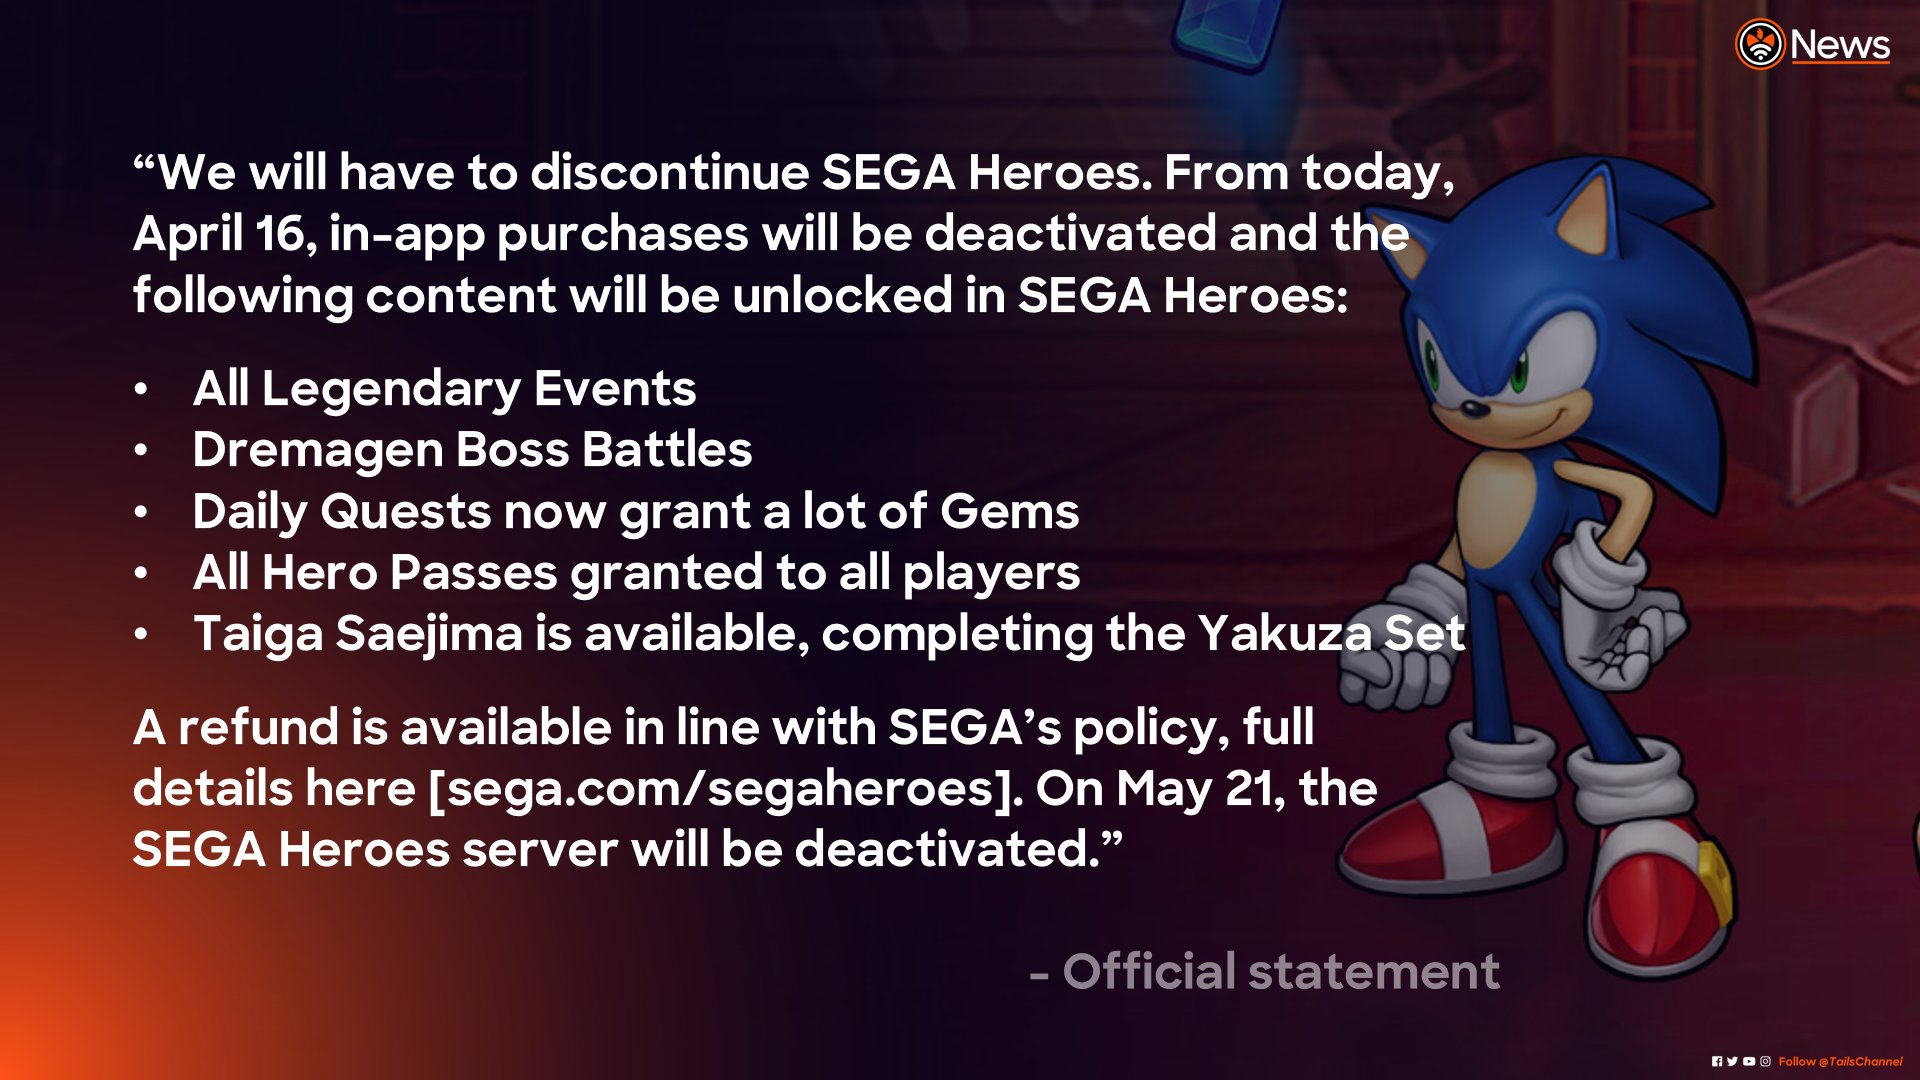 Tails Channel Sonic The Hedgehog News Updates On Twitter New Segaheroes To Be Discontinued 21st May After Demiurge Studios Splits Away From Sega Working With Such A Talented Team Has